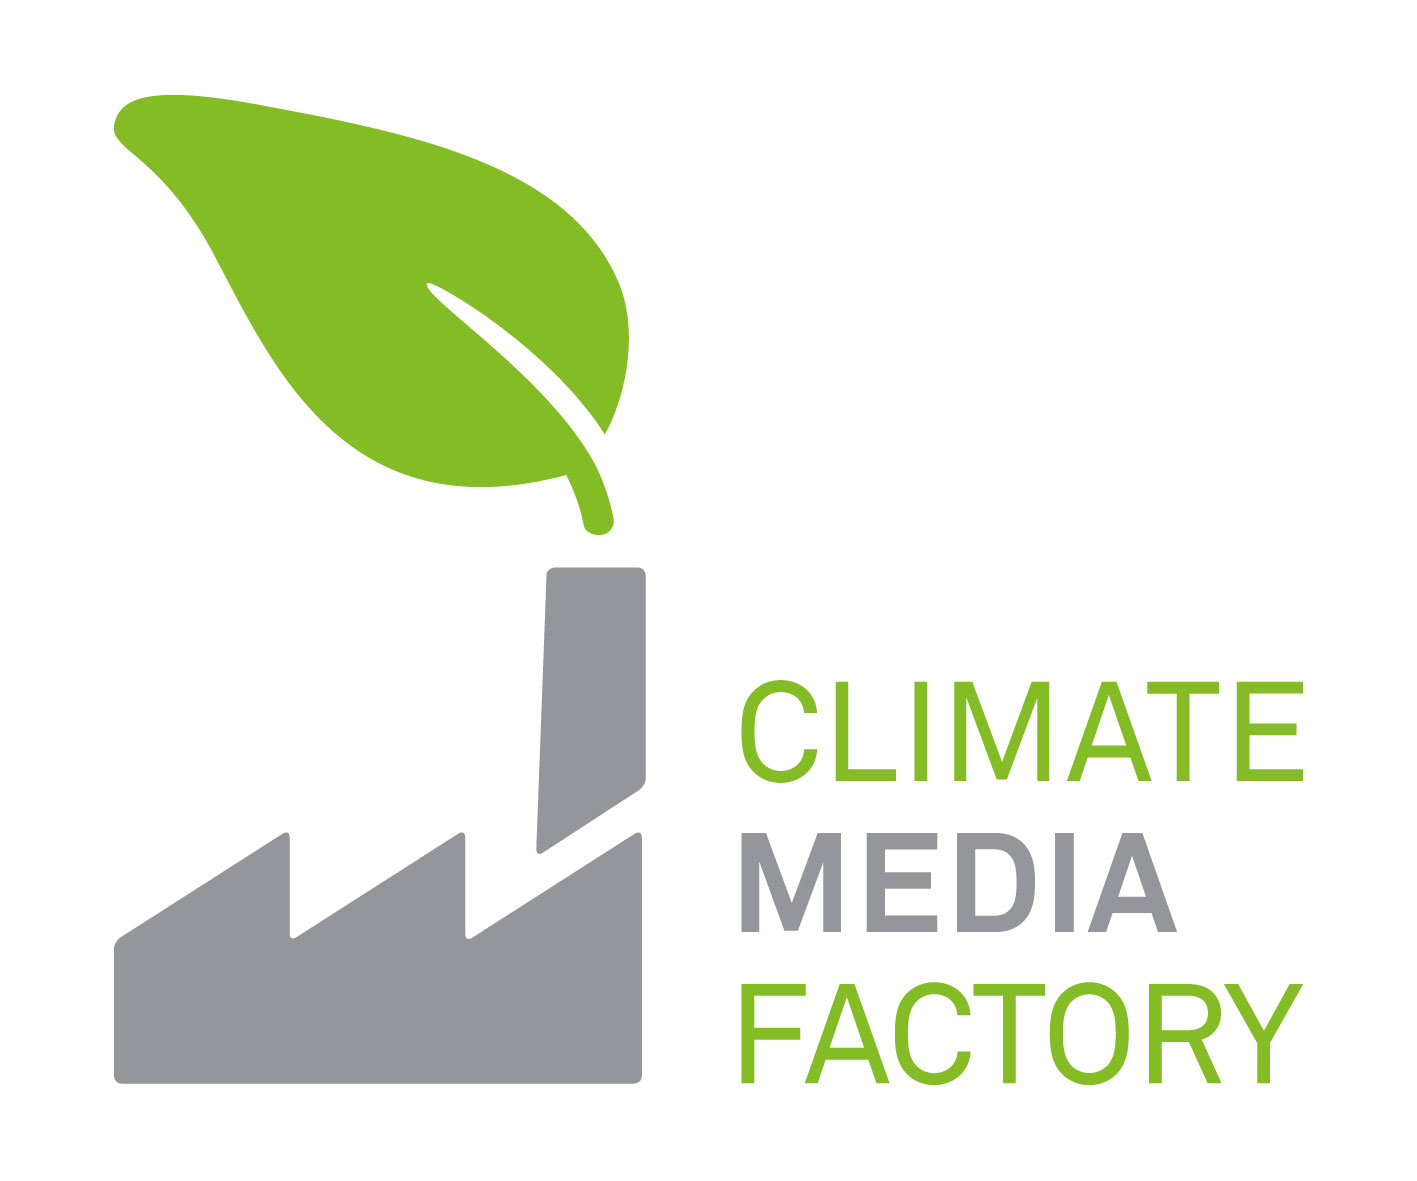 Climate Media Factory